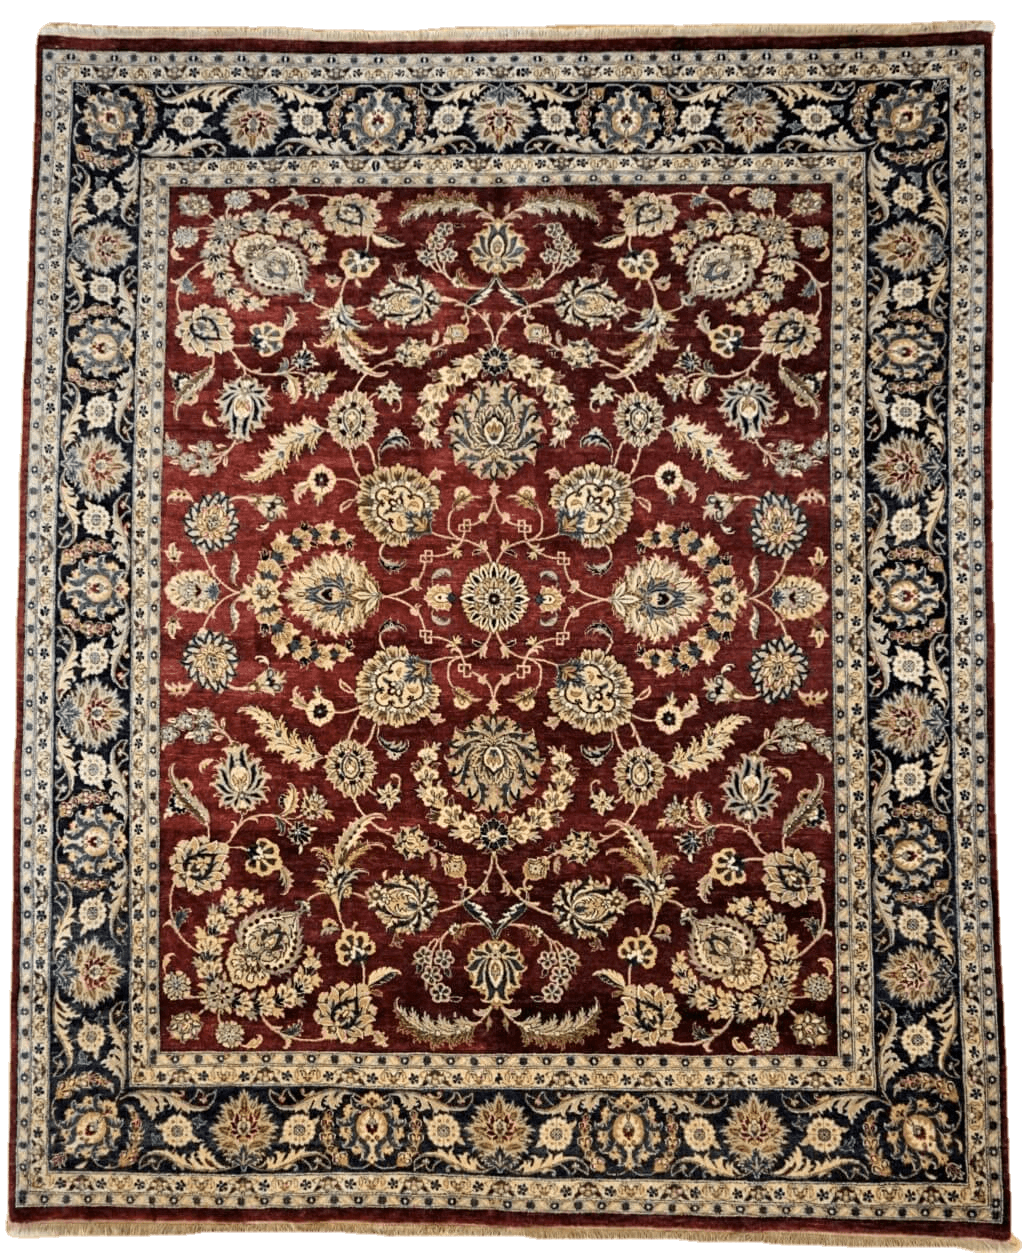 Pakistan Floral Rug - Solomon's Collection & Fine Rugs